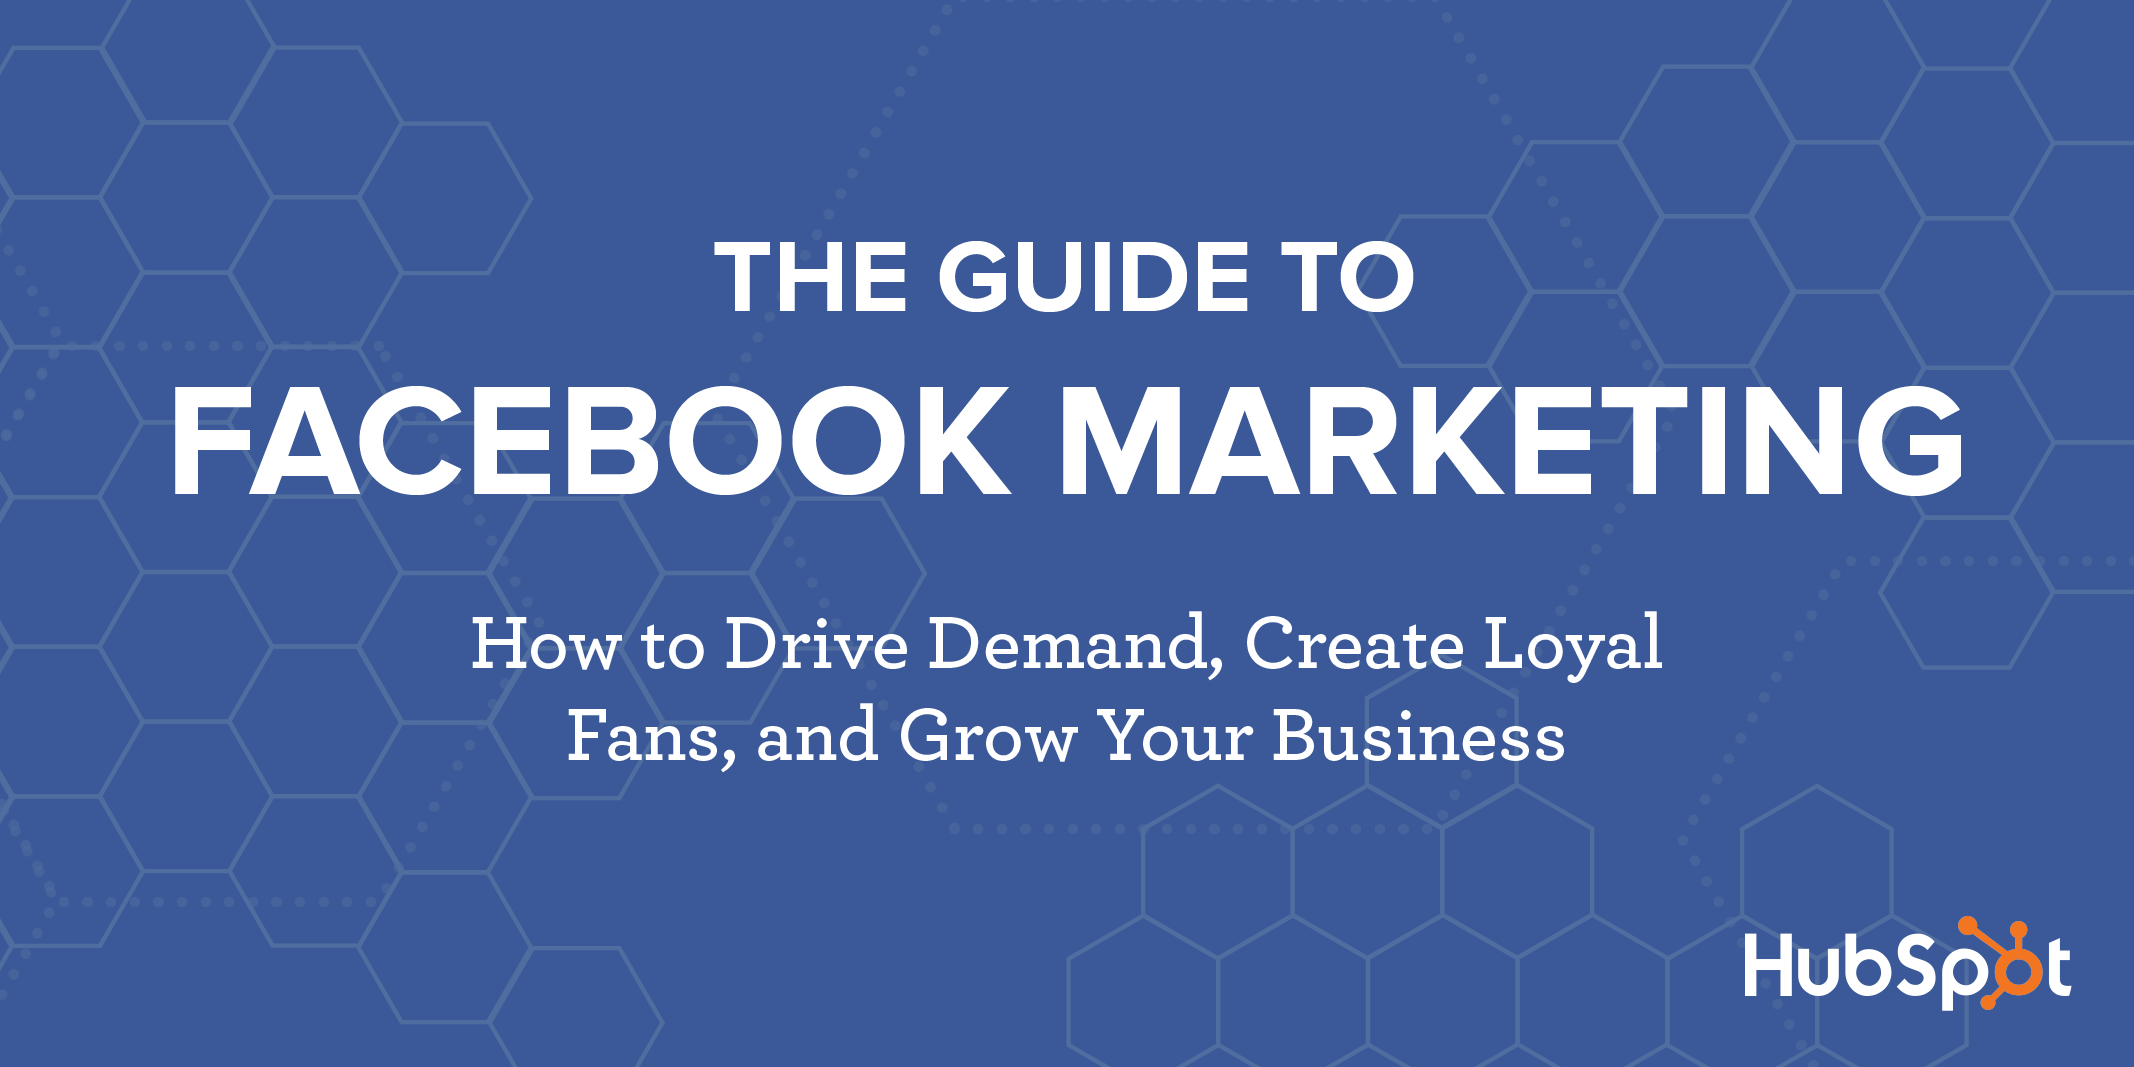 Facebook Marketing: The Ultimate Guide